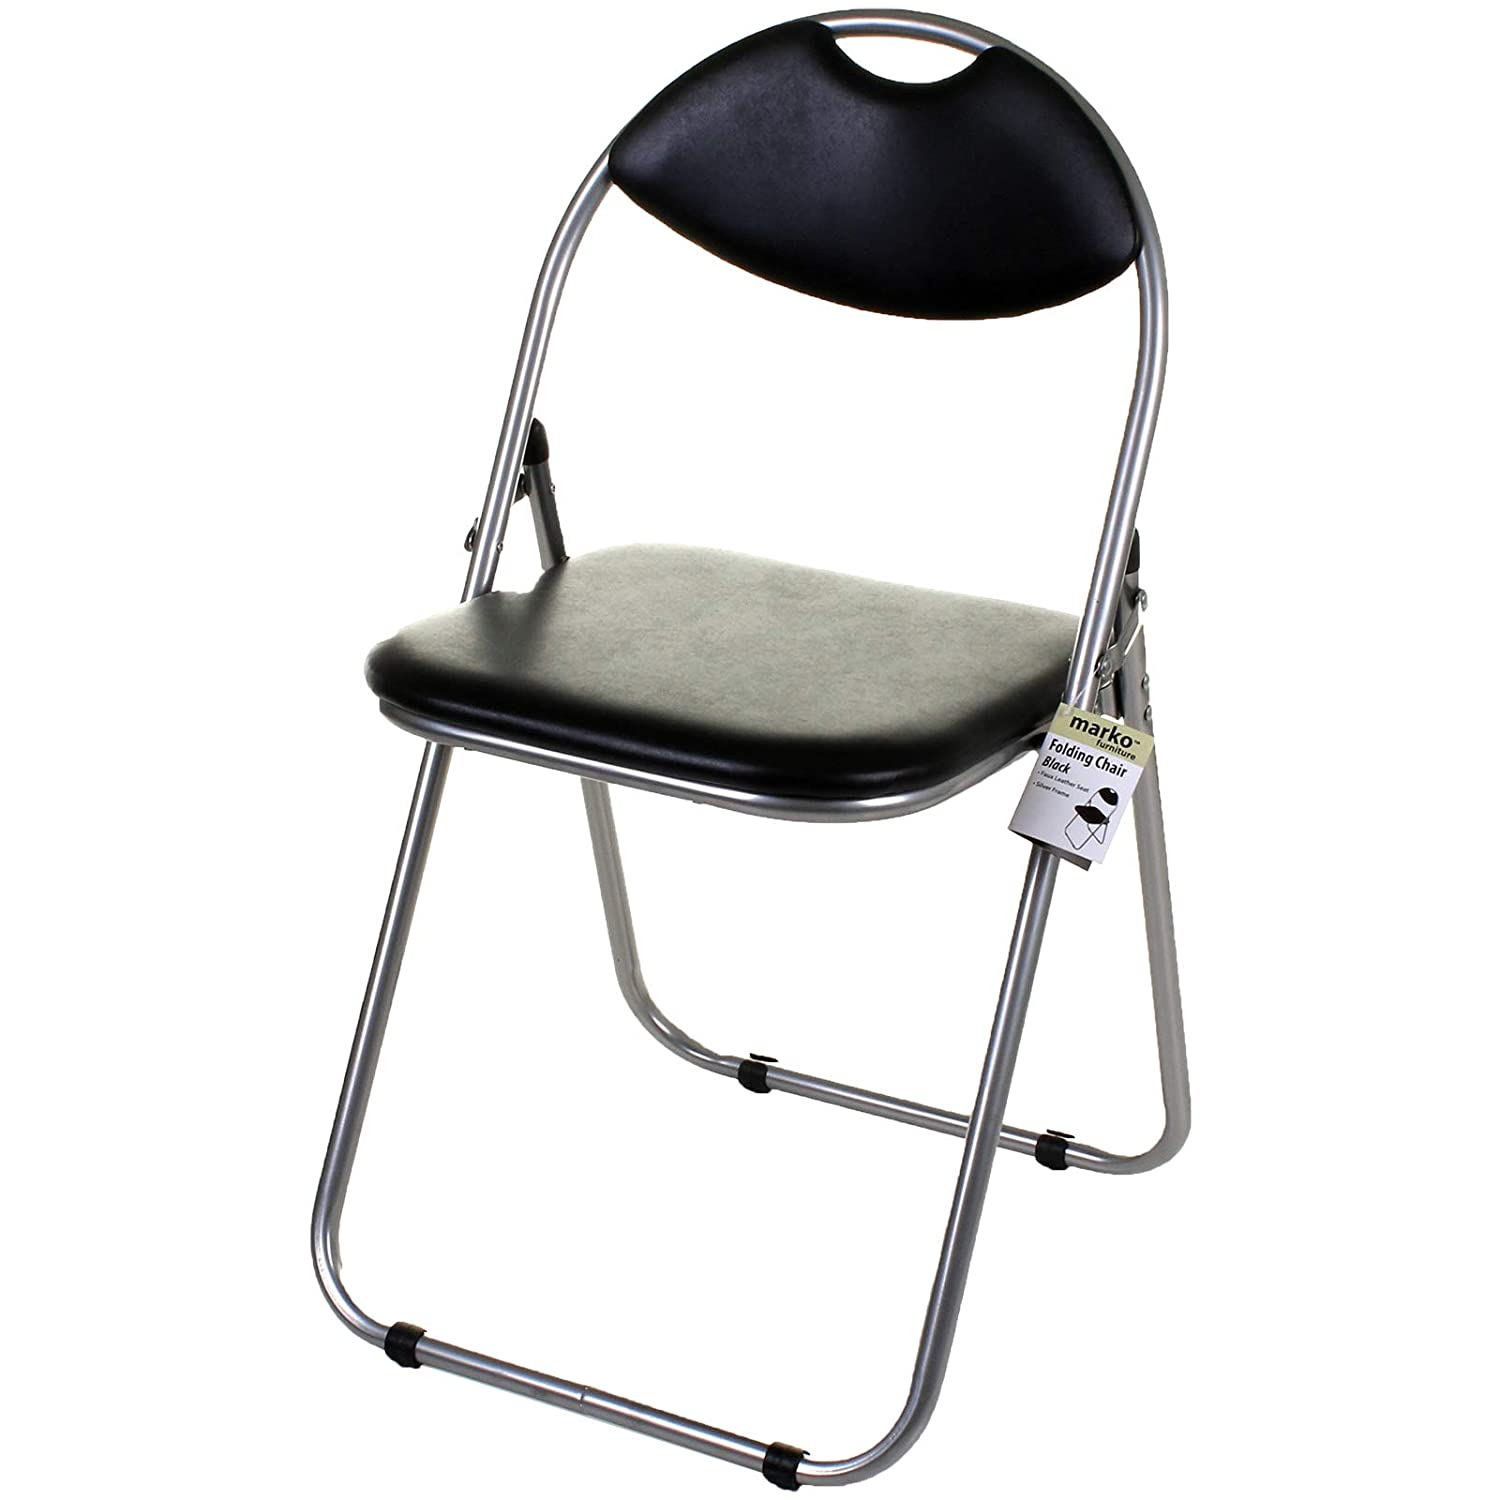 Awesome Marko Furniture Black Pink Faux Leather Folding Chair Padded Seat Back Rest Computer Office 1 Chair Black Pabps2019 Chair Design Images Pabps2019Com